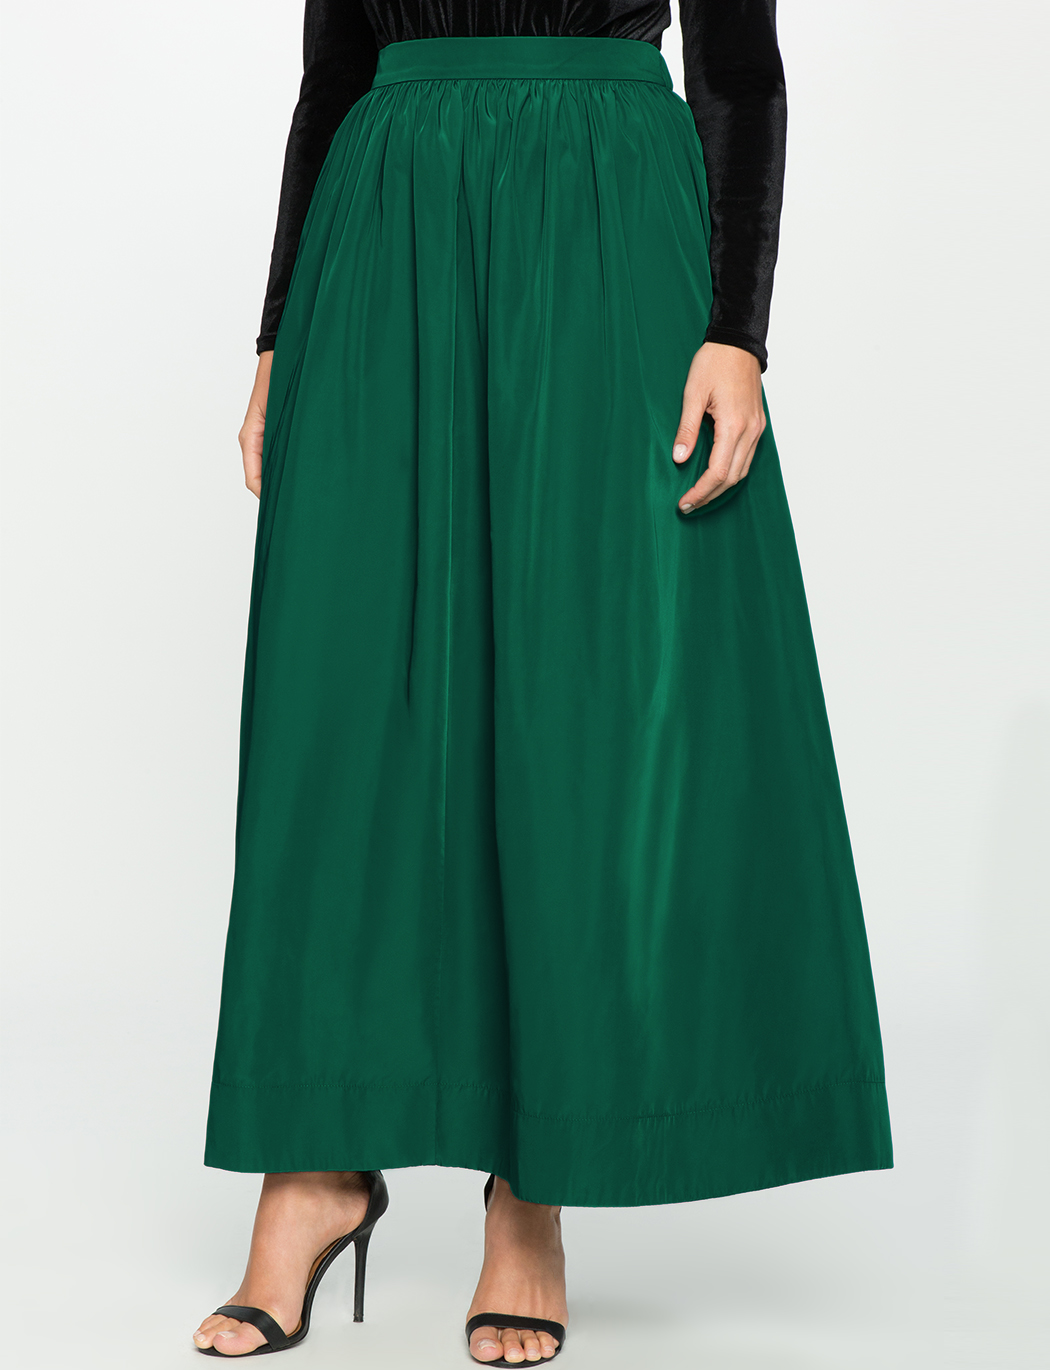 Taffeta Ball Gown Maxi Skirt | Women\'s Plus Size Skirts | ELOQUII